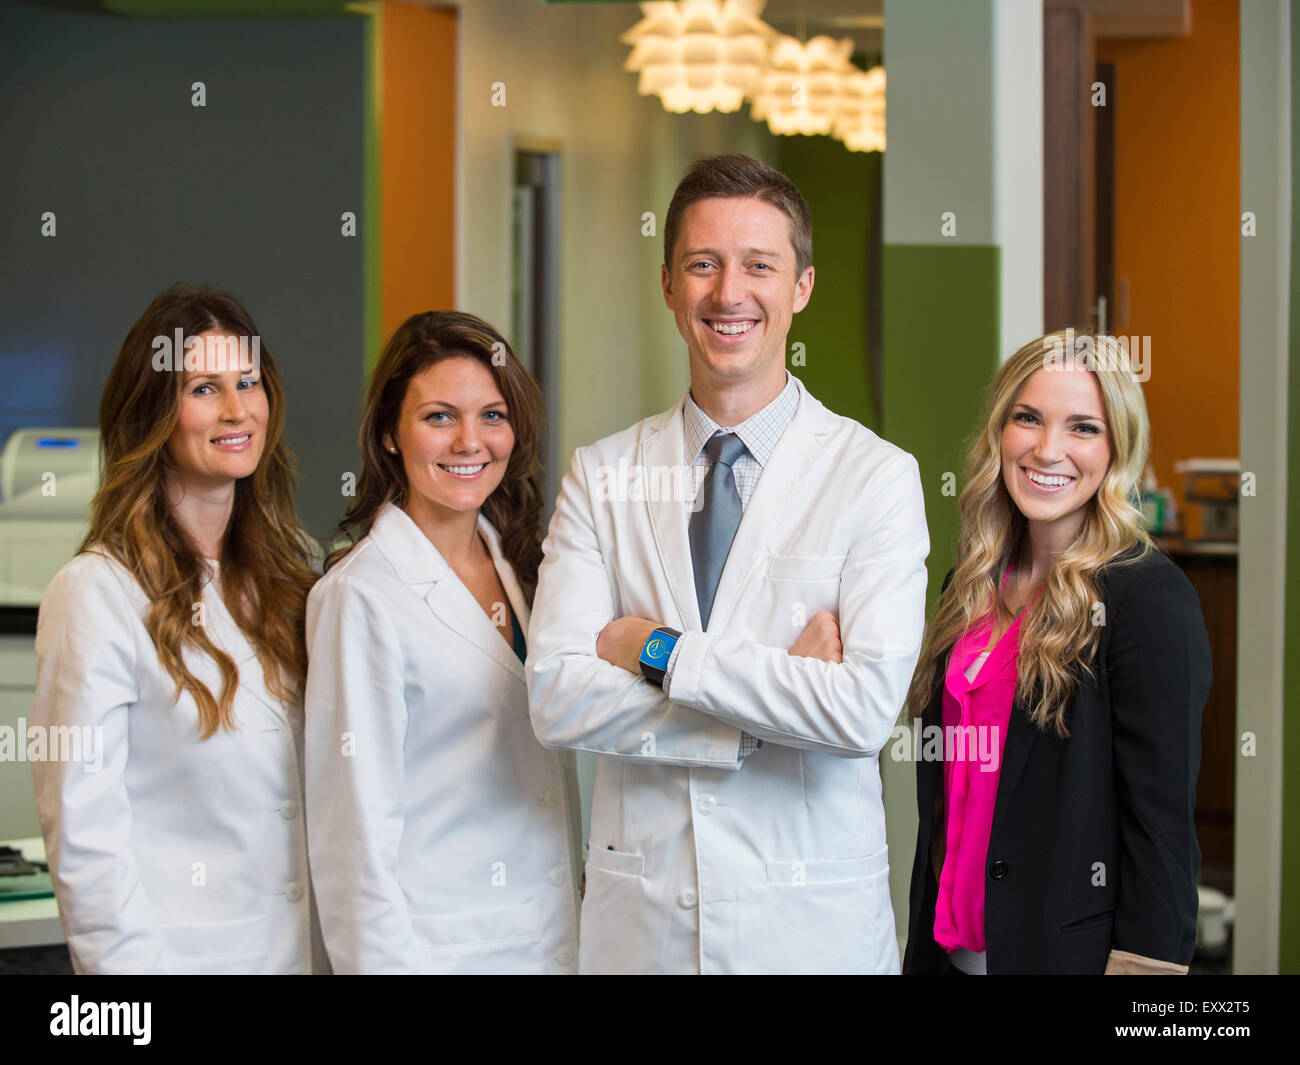 Portrait of dentists and patient - Stock Image